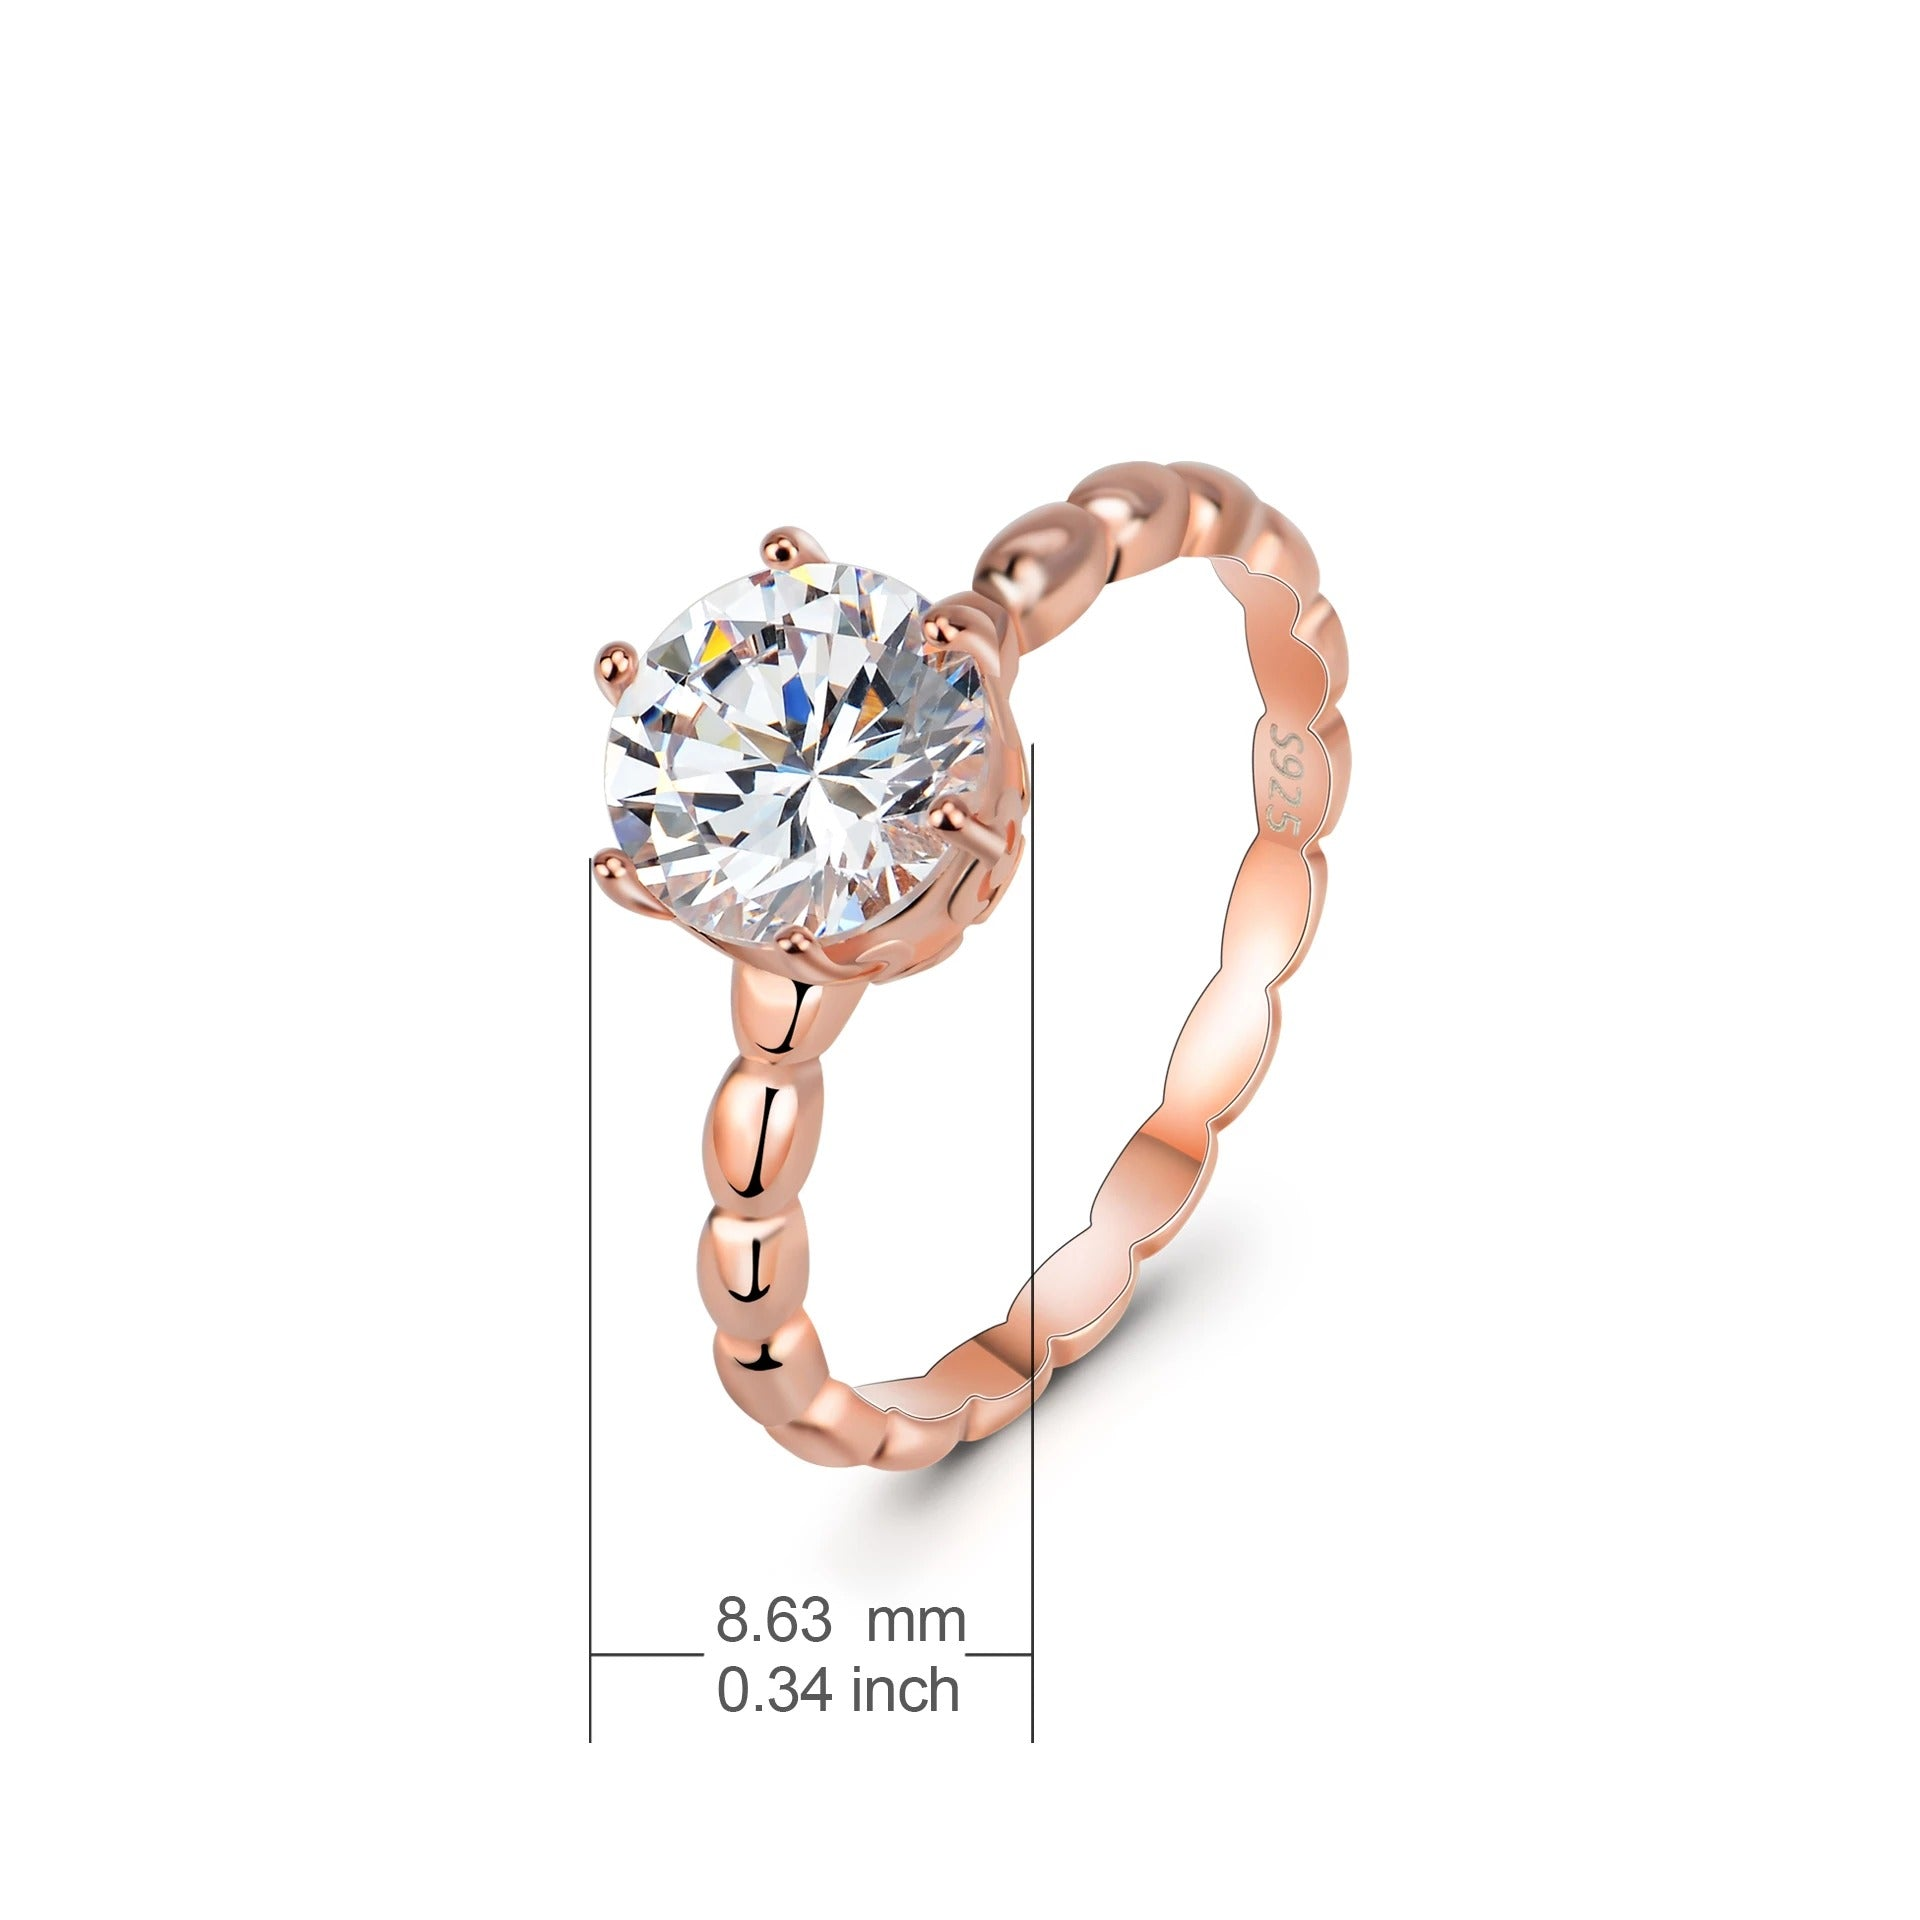 Temperature Wholesale Ring Western Jewelry Women Engagement Wedding Rings